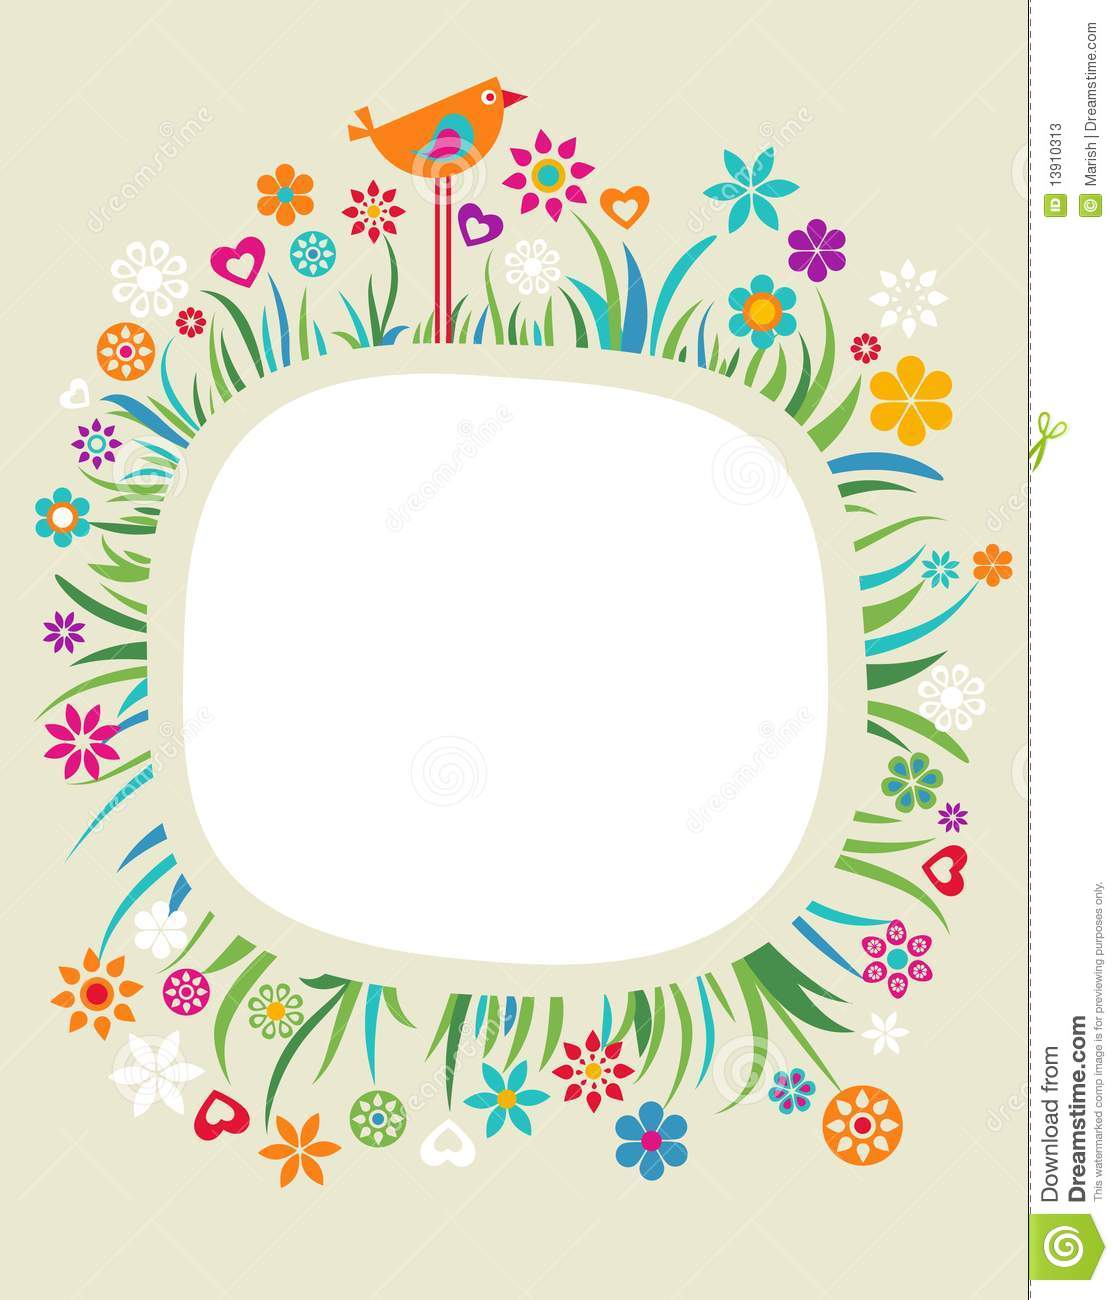 Template With Floral Border - 3 Stock Photos - Image: 13910313